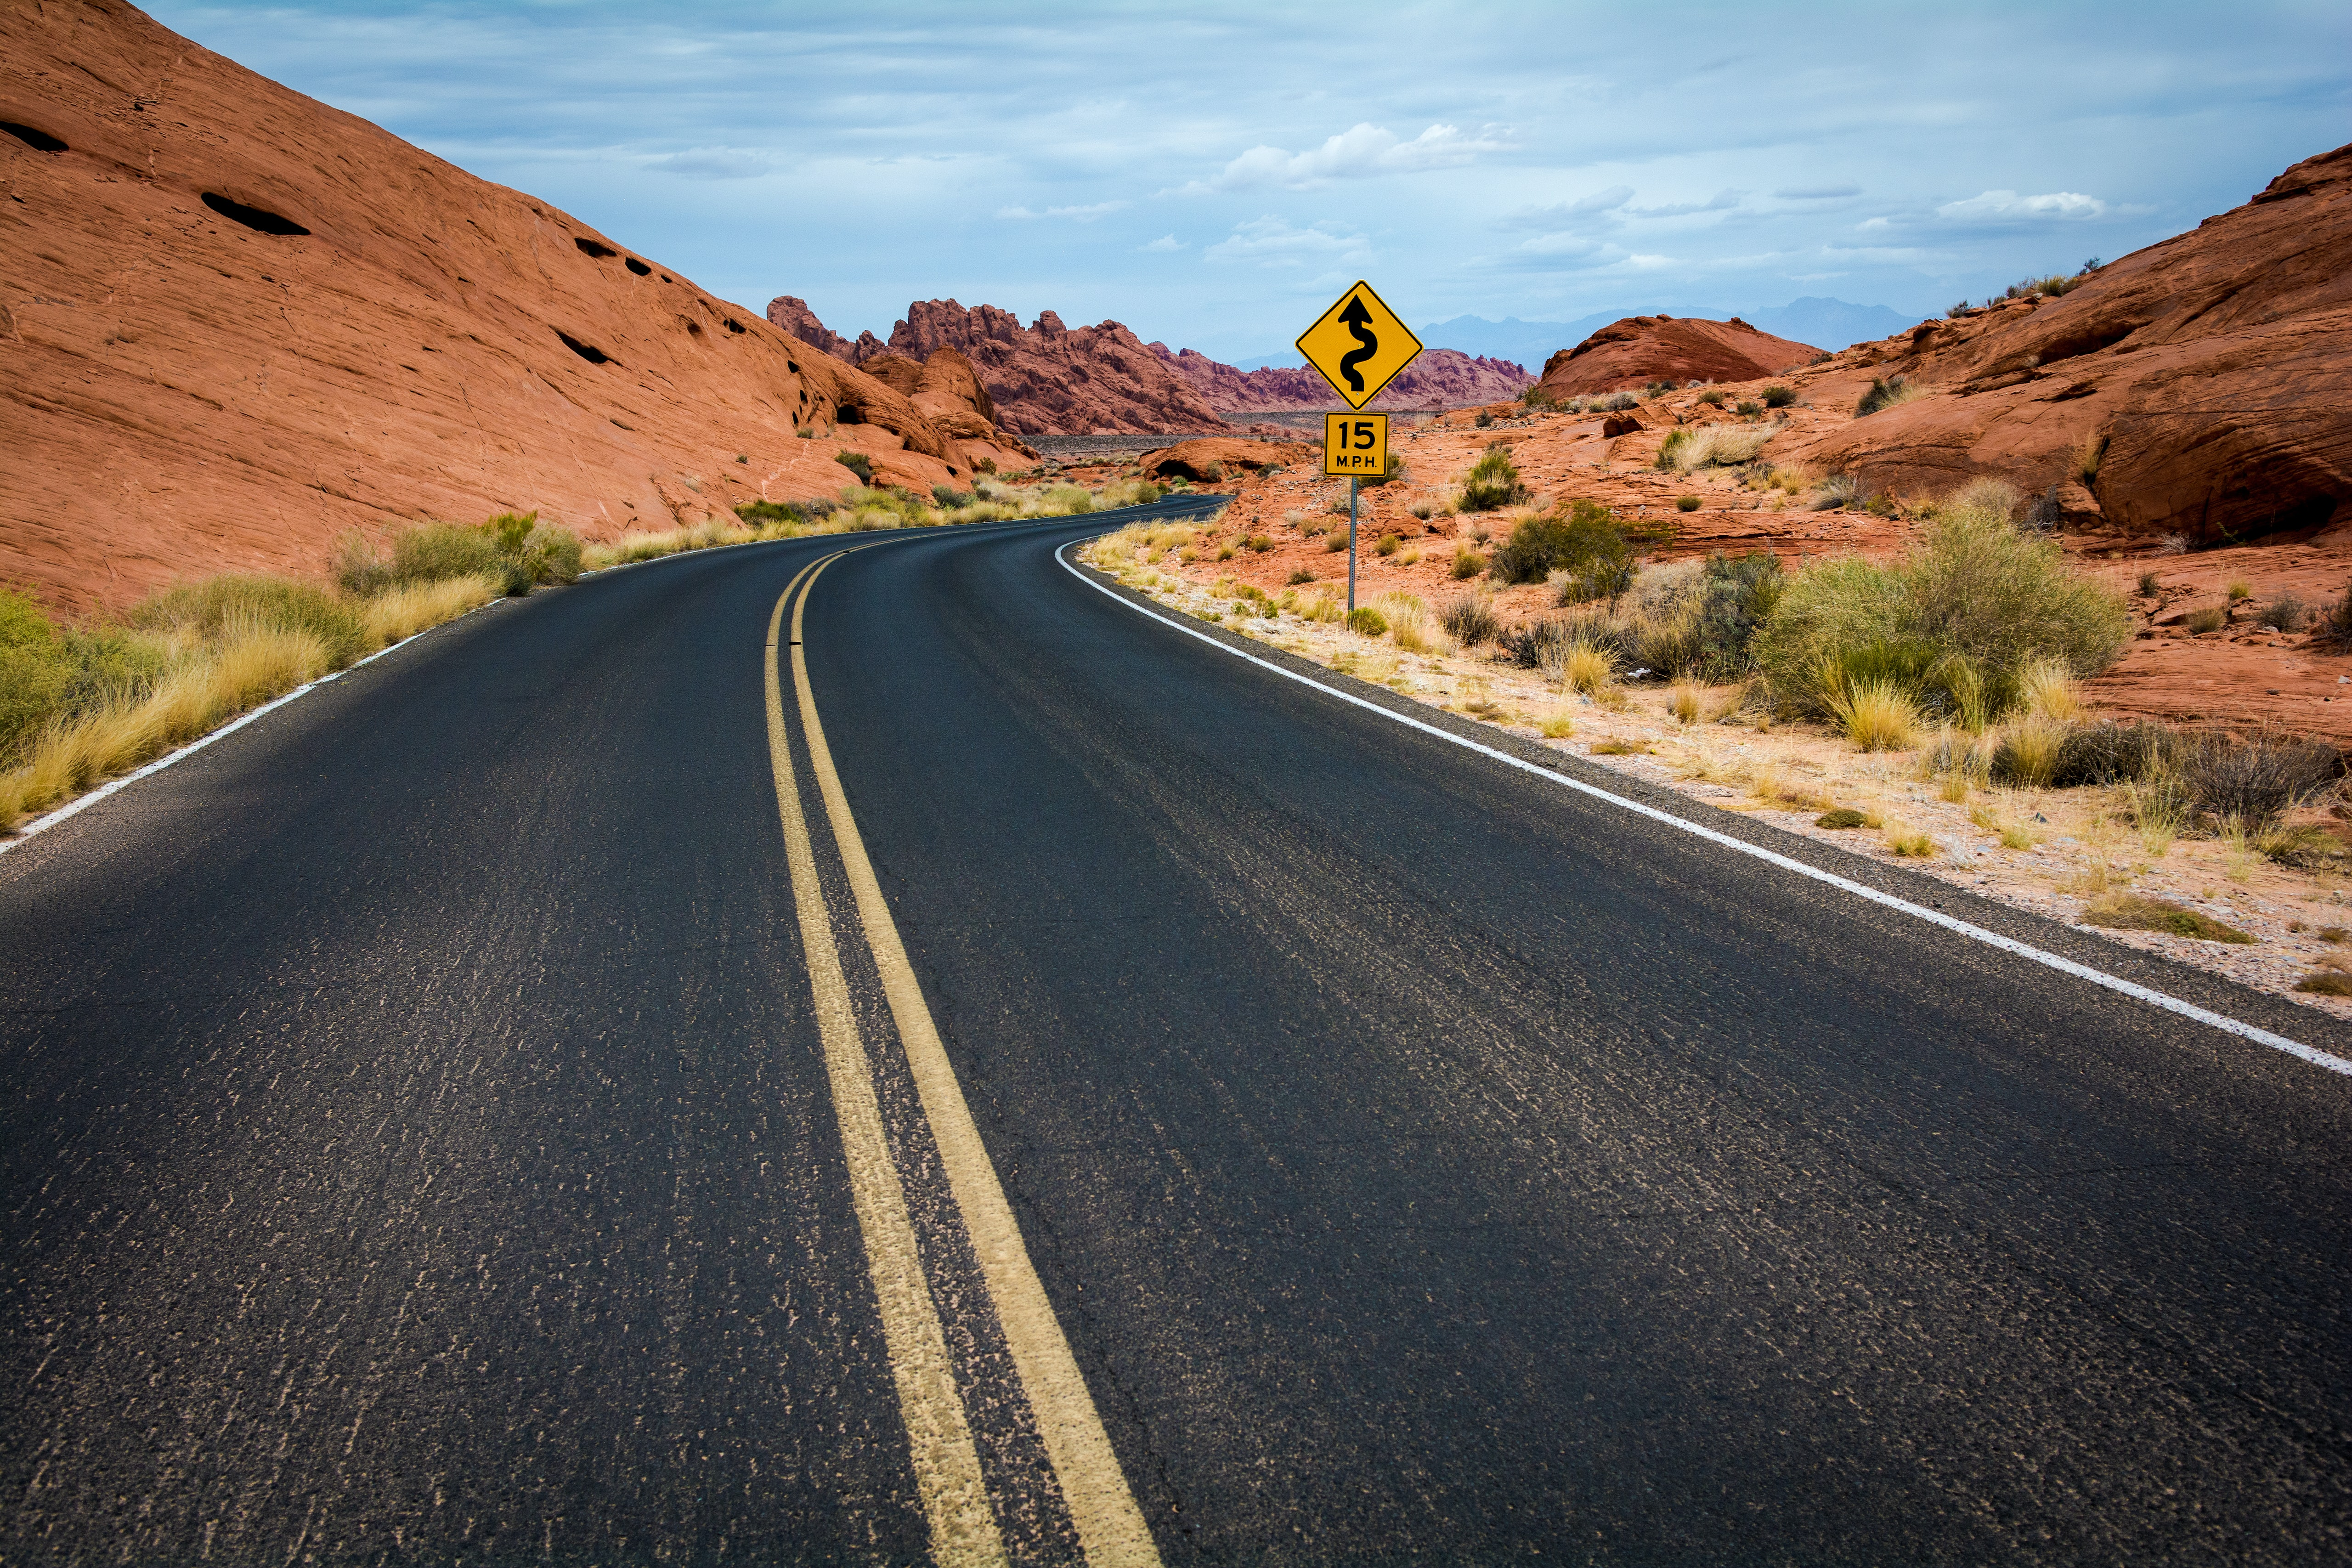 A winding asphalt road through the sandstone landscape of the Valley of Fire